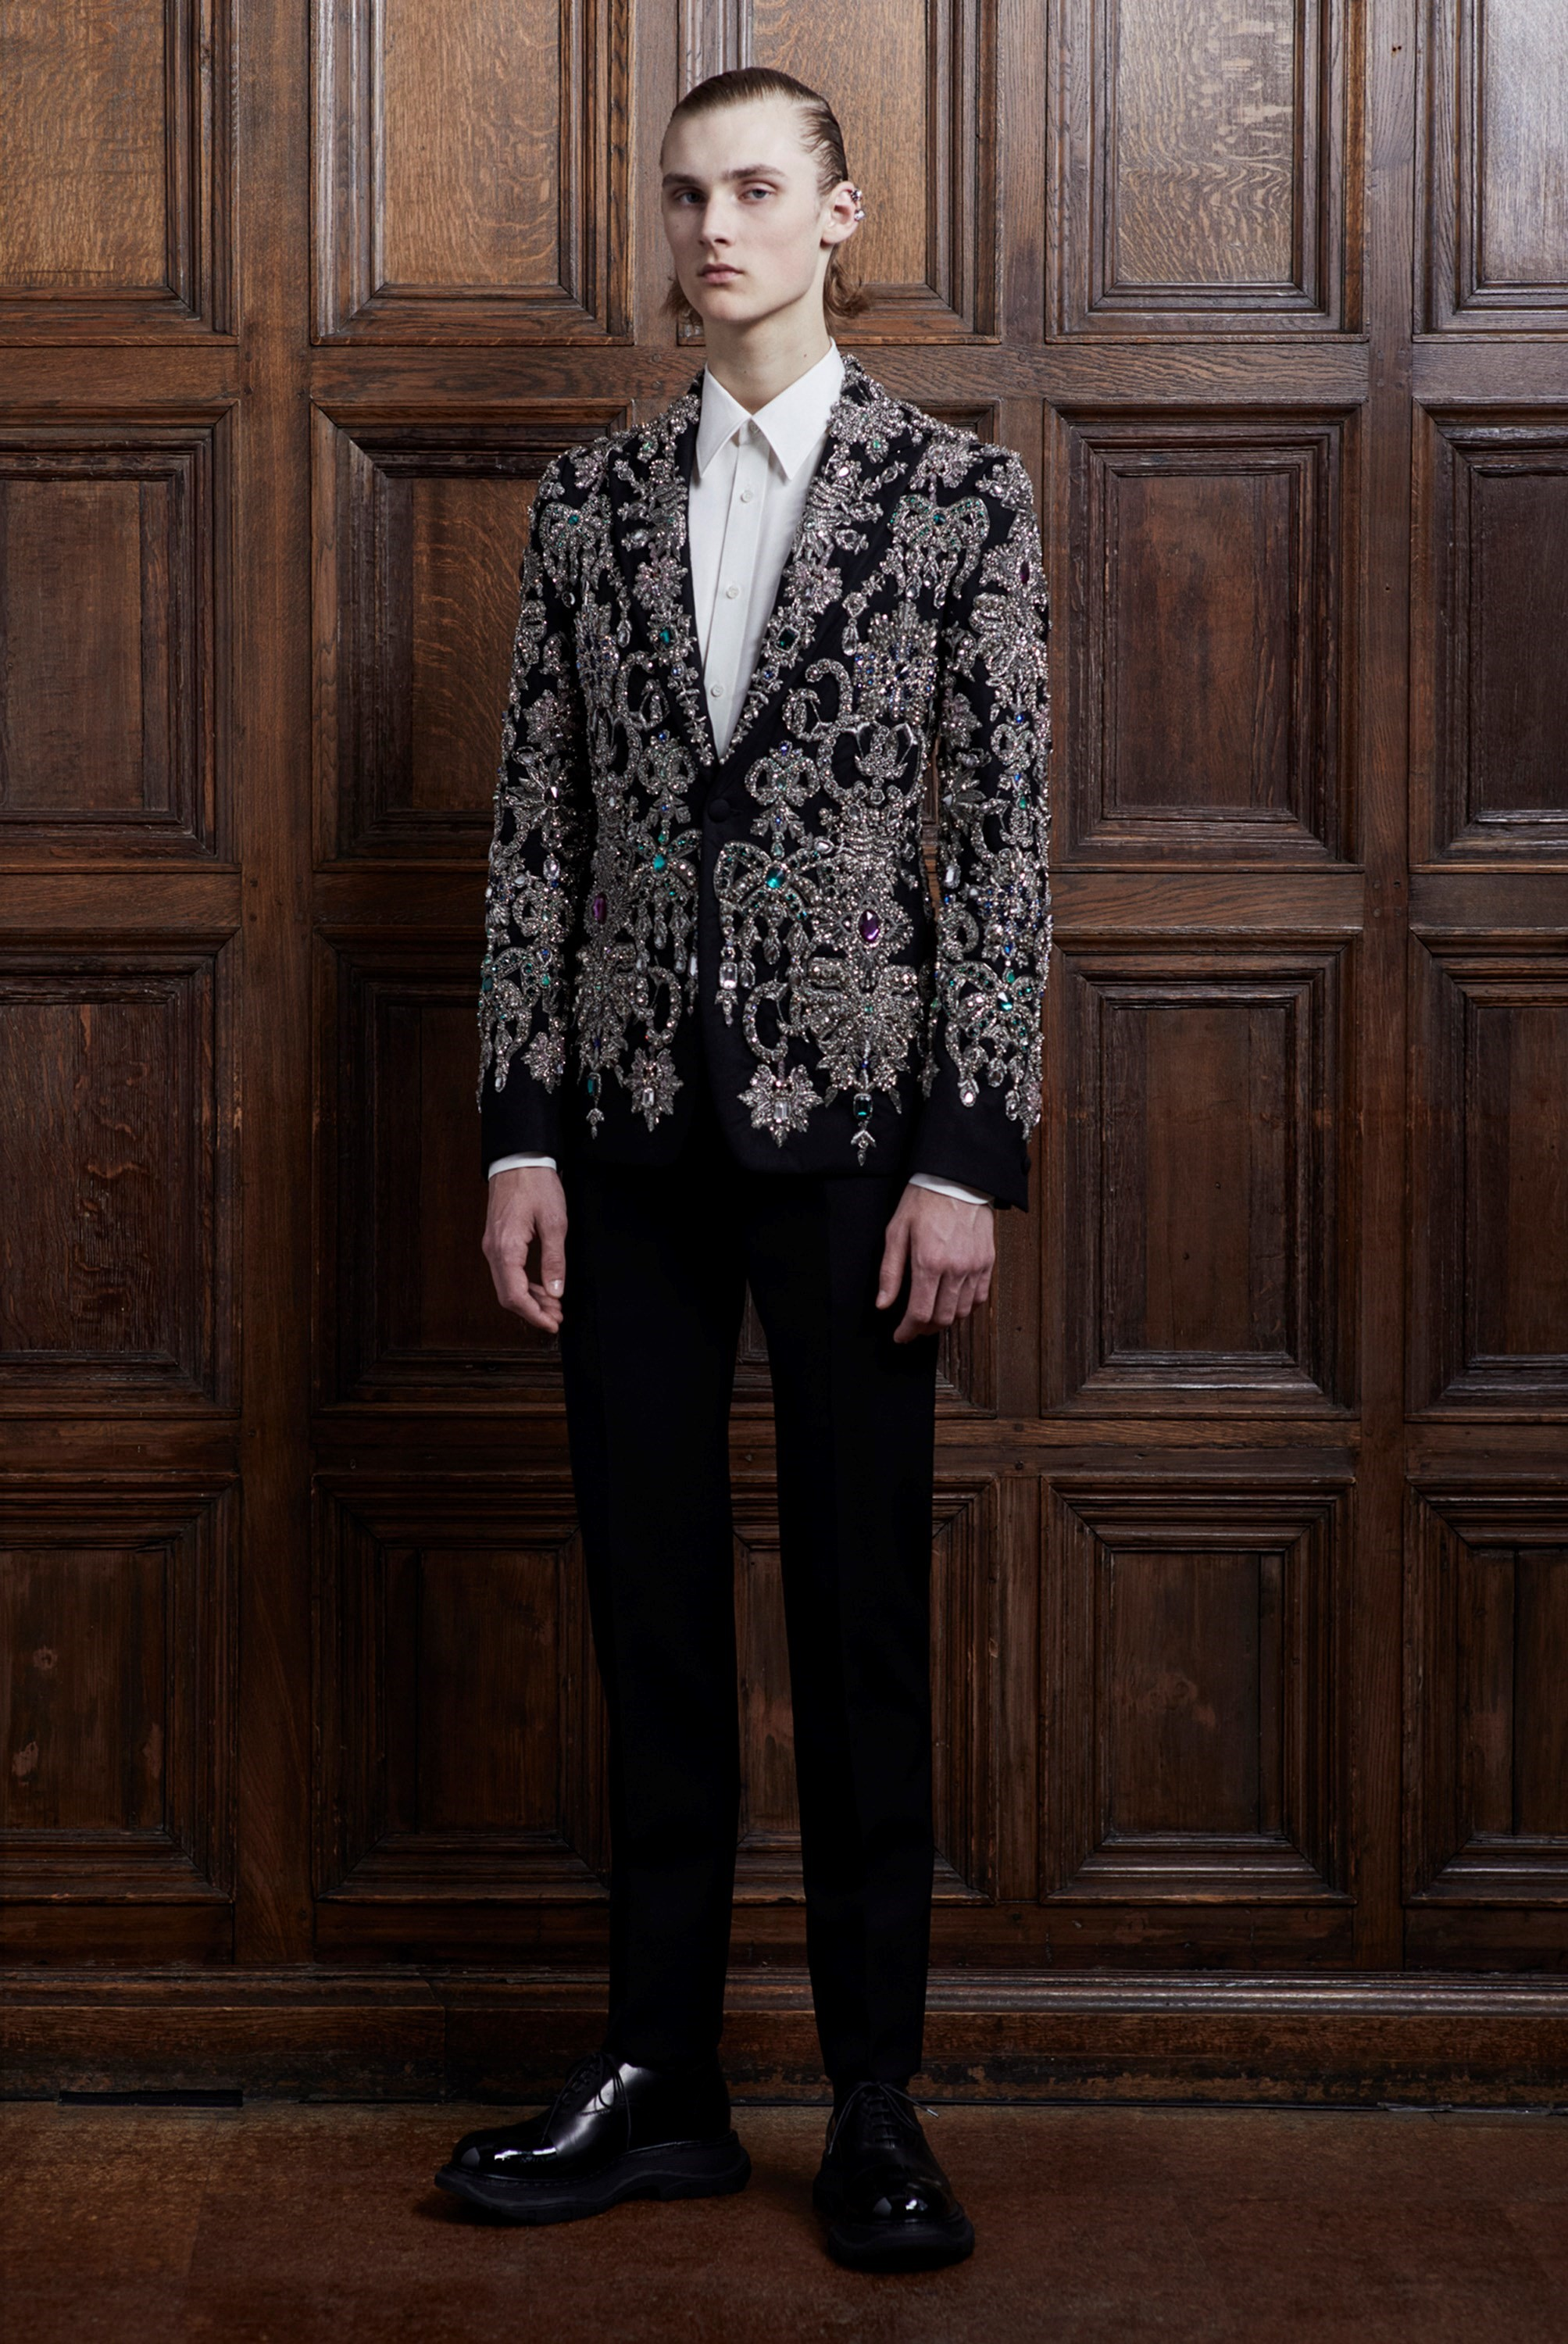 Alexander McQueen's Latest Men's Collection, Captured by Ethan James Green